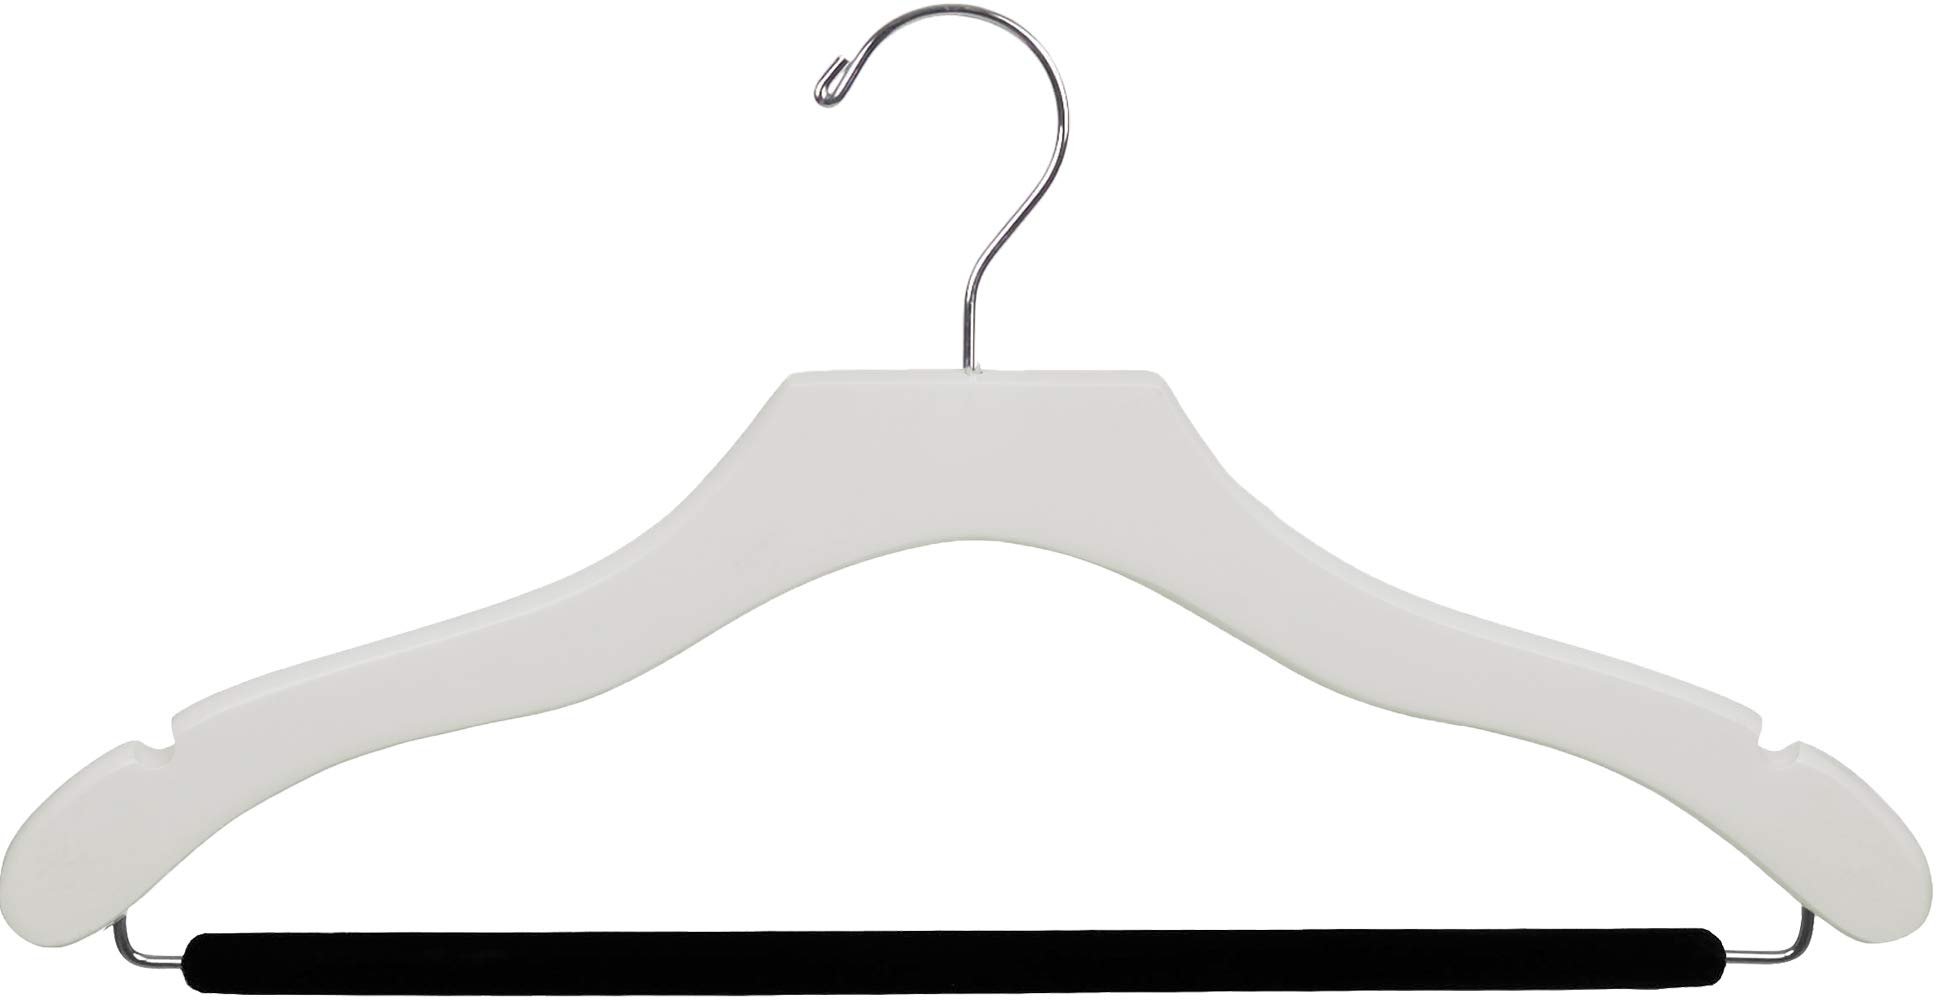 The Great American Hanger Company Wavy White Wood Suit Hanger w/Velvet Non-Slip Bar, Box of 100 Space Saving 17 Inch Flat Wooden Hangers w/Chrome Swivel Hook & Notches for Shirt Dress or Pants